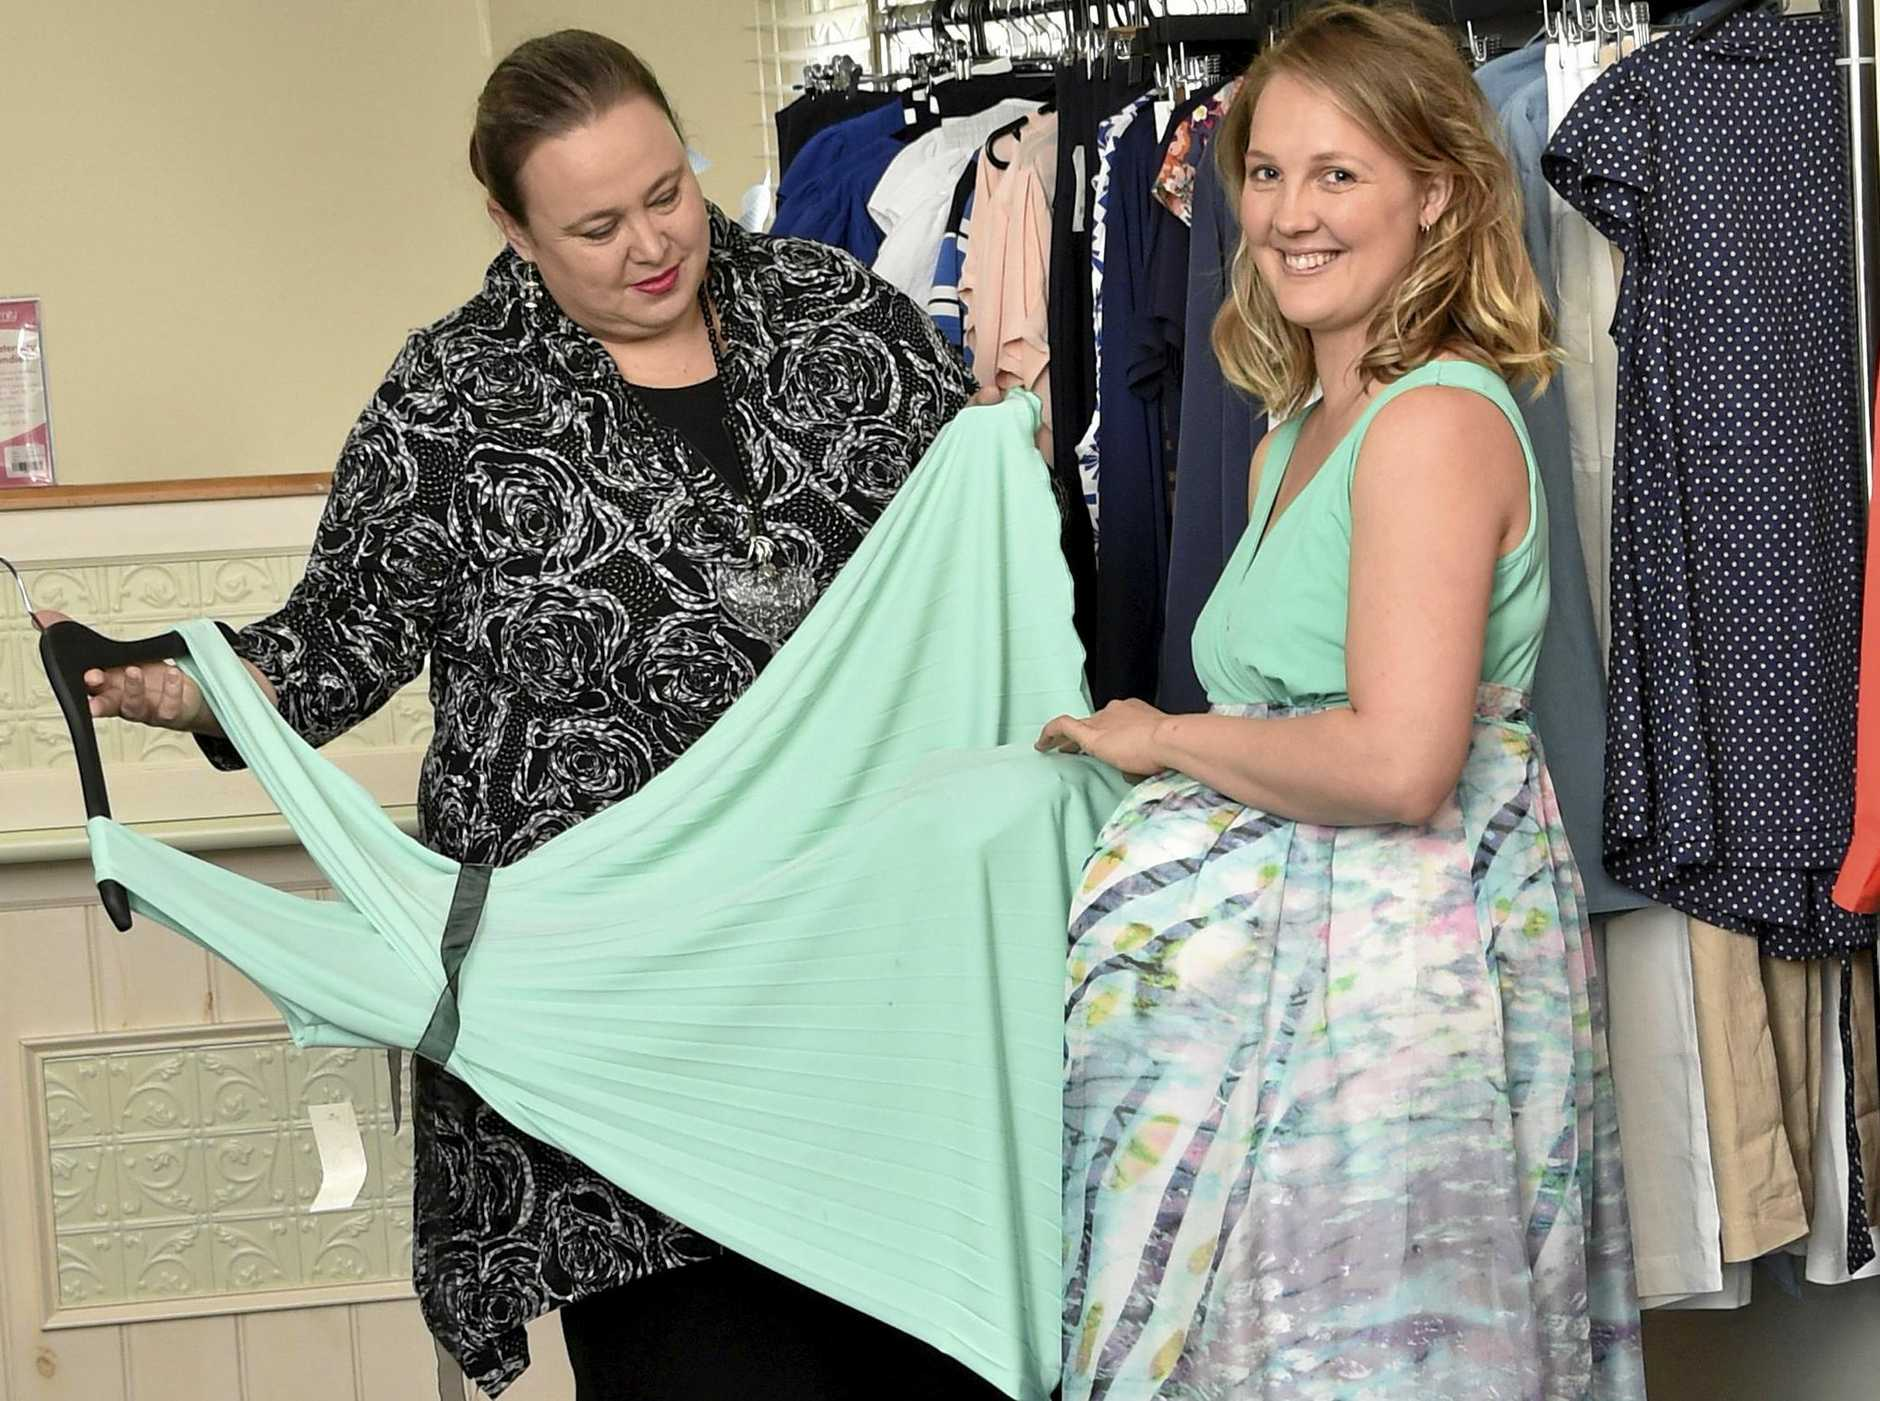 Little Miracles Maternity Wear Toowoomba Store